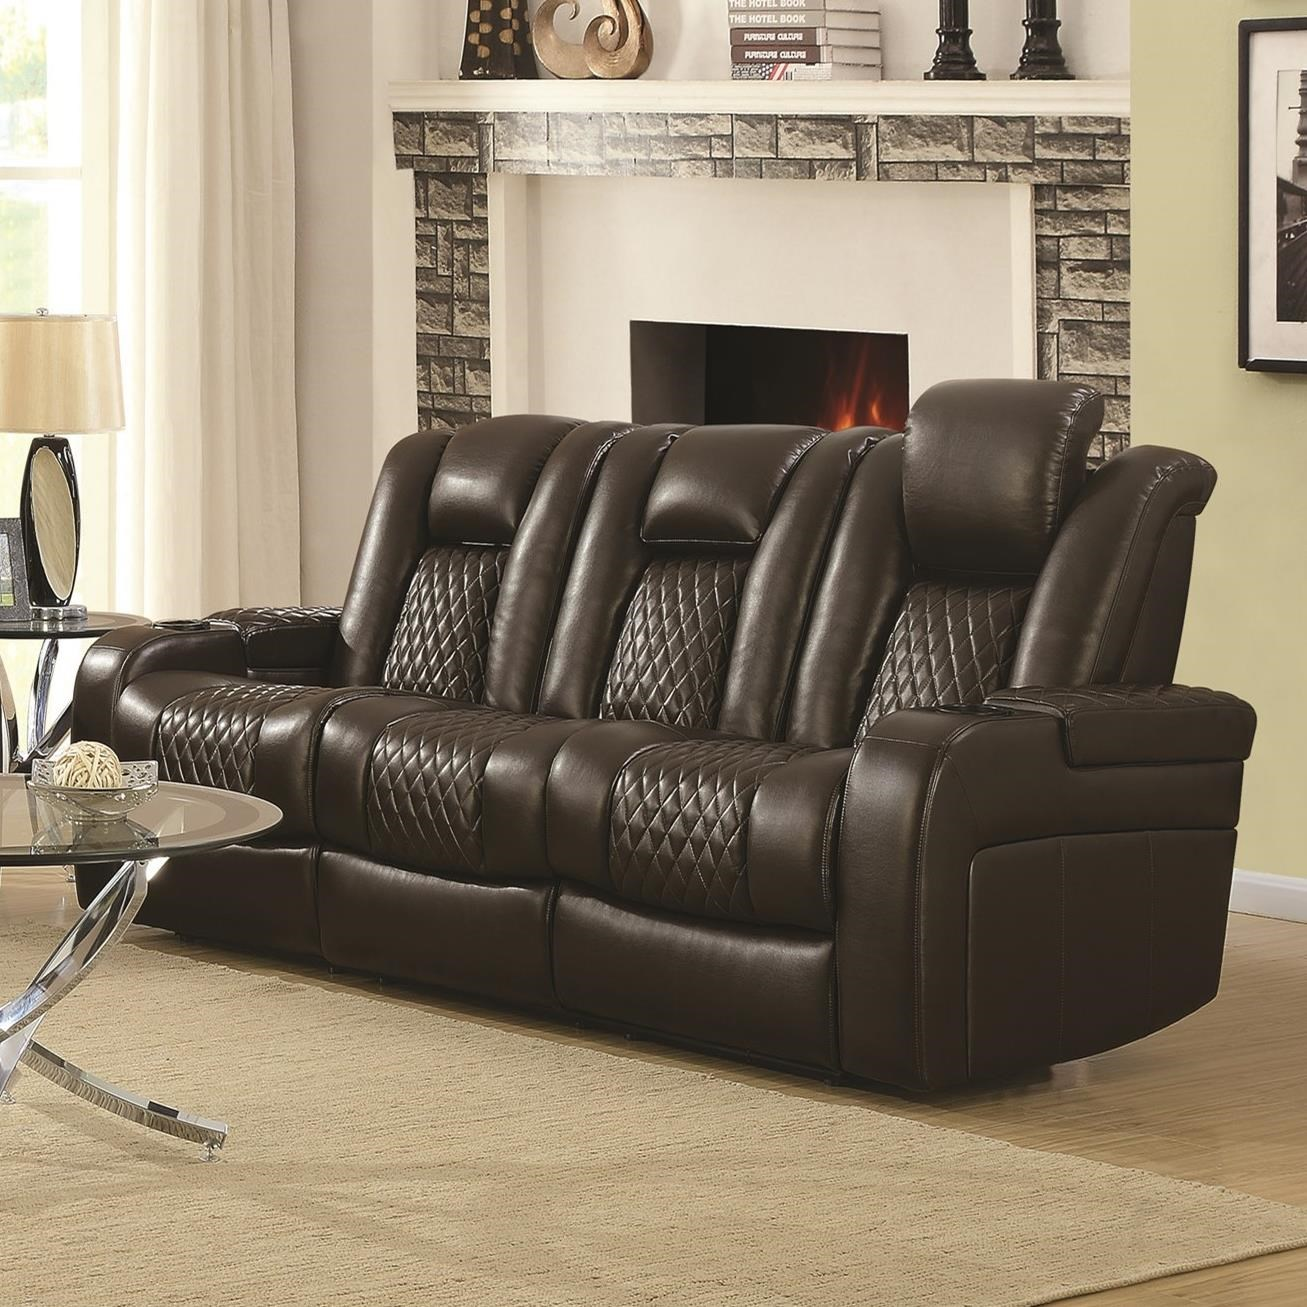 Delangelo Power Reclining Sofa by Coaster at Beds N Stuff